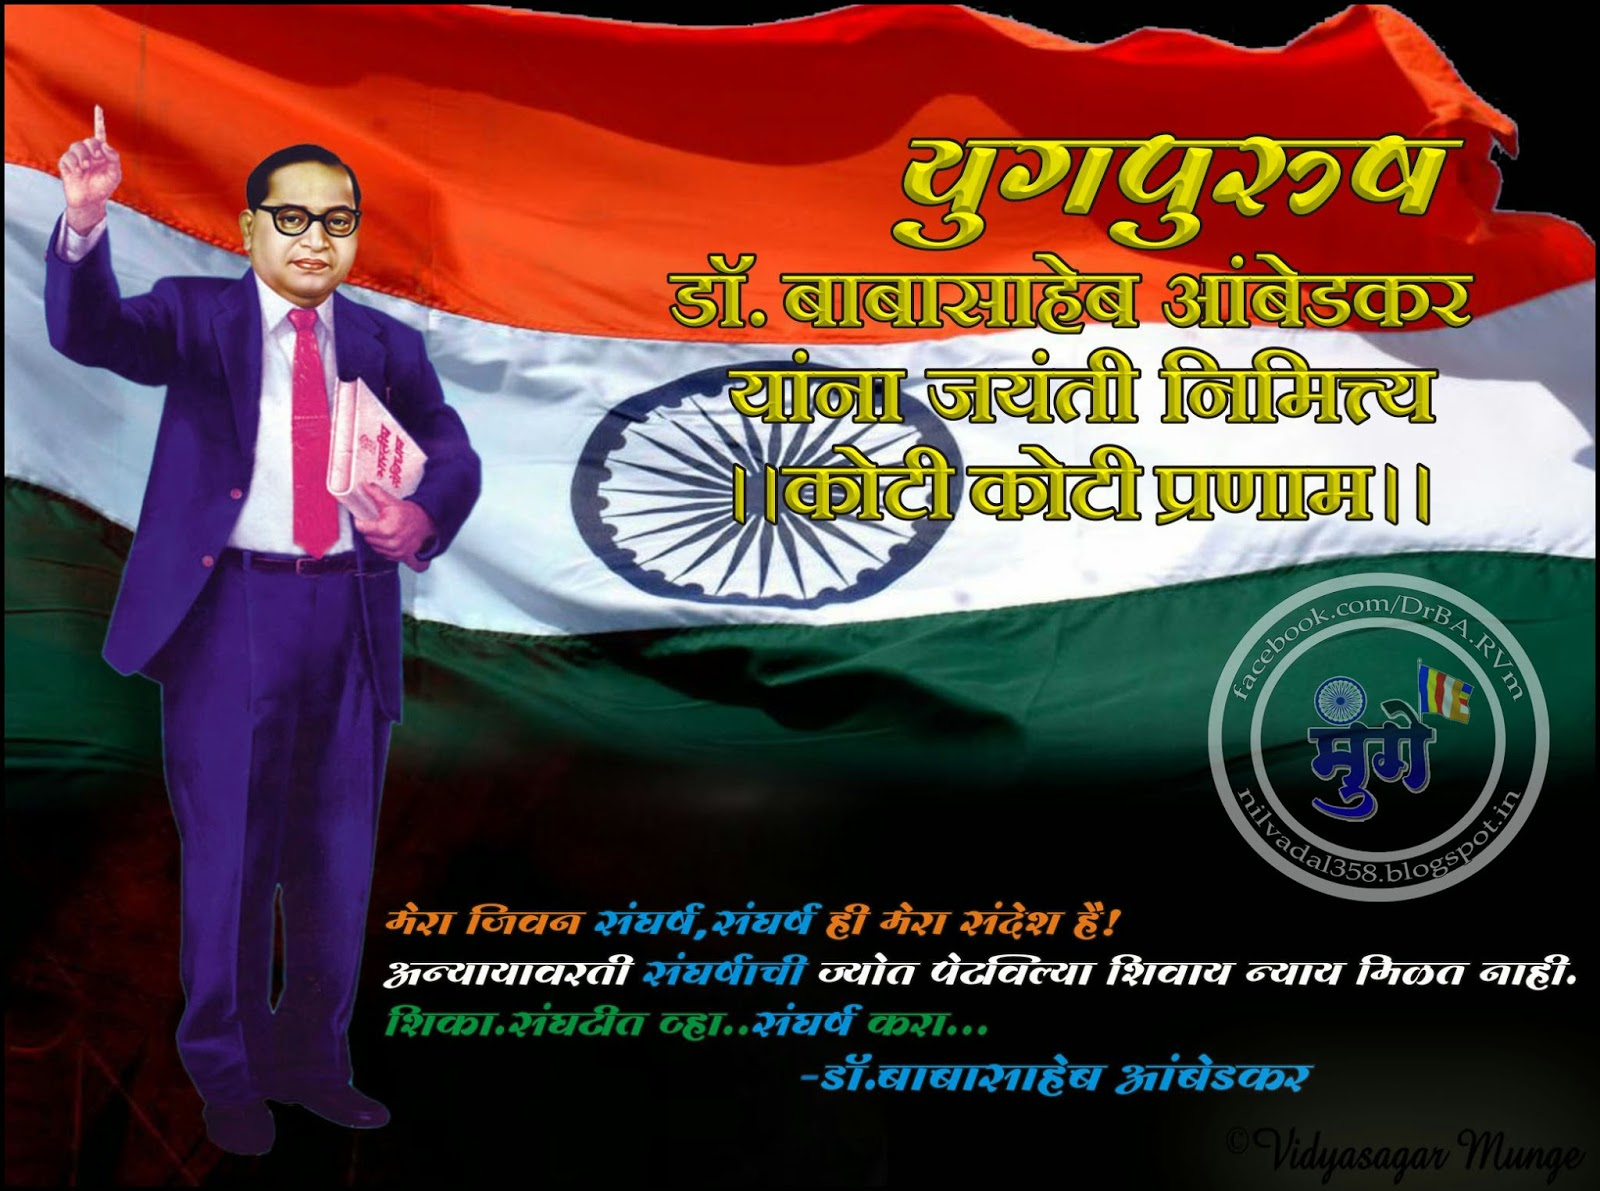 br ambedkar Article on ambedkar's neo-buddhism by edmund weber short movie on life of drbabasaheb ambedkar 28 2018 11:48.